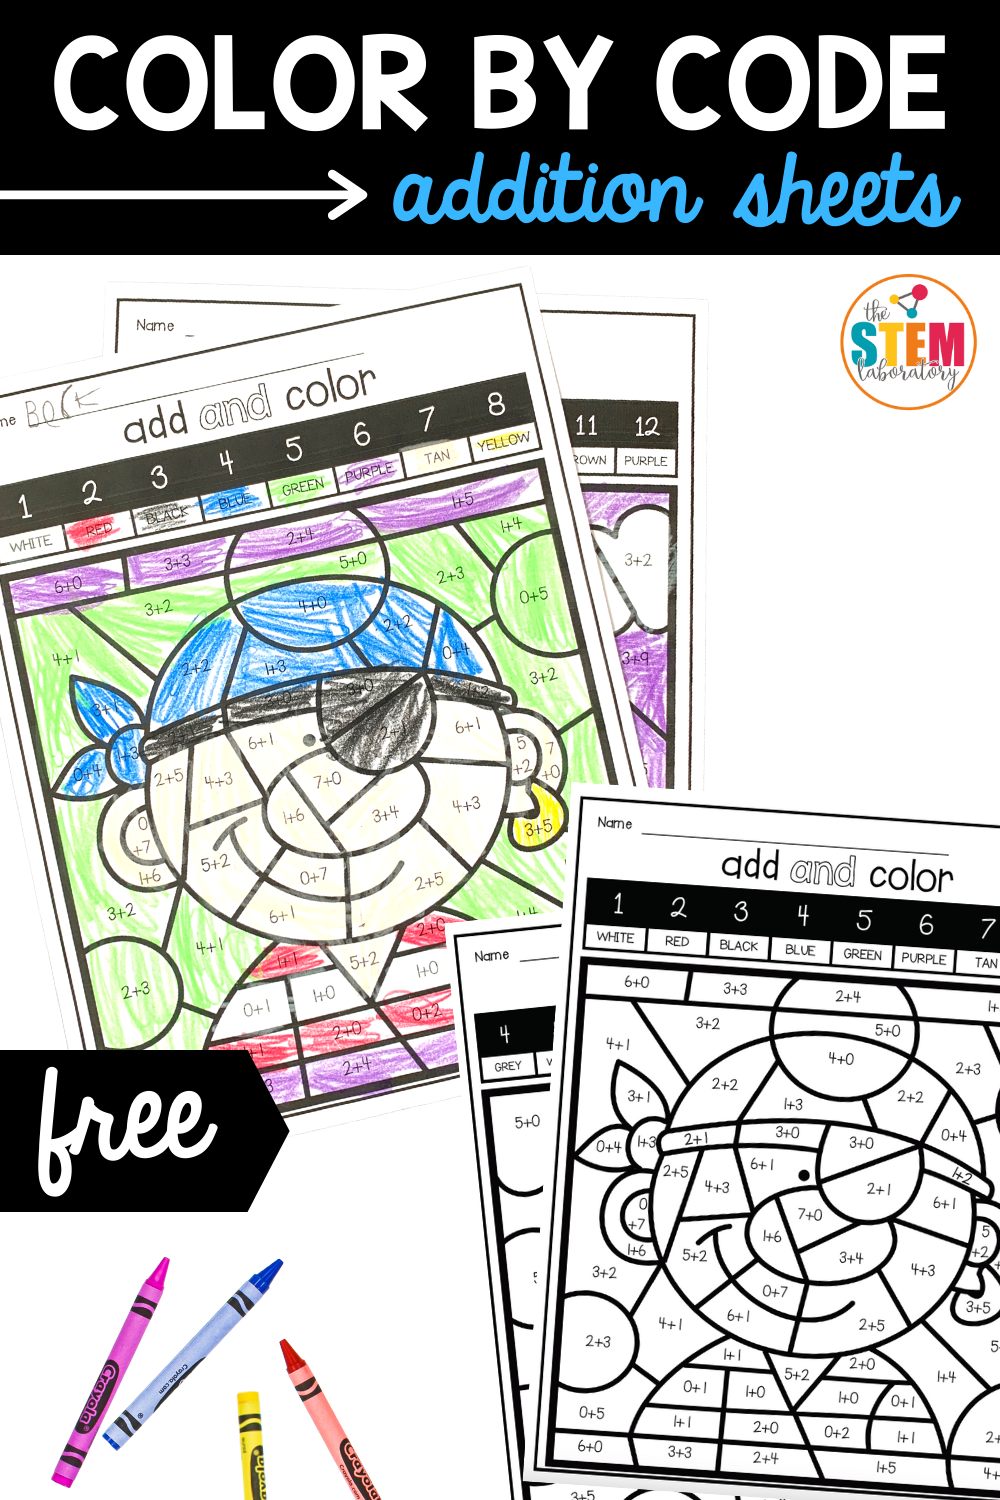 Color by Code Addition Sheets